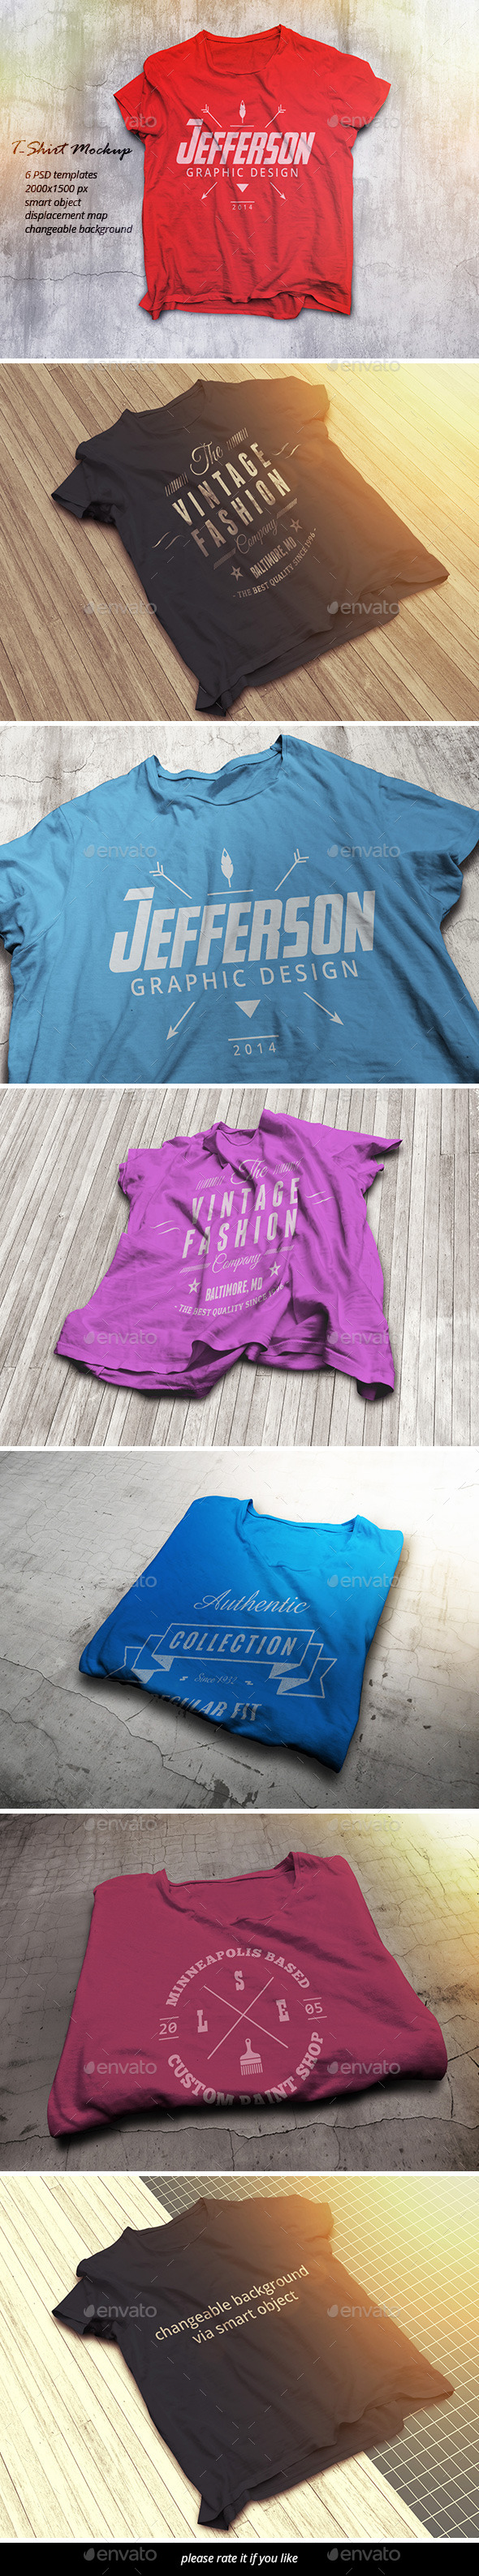 GraphicRiver T-Shirt Mockup 9722164